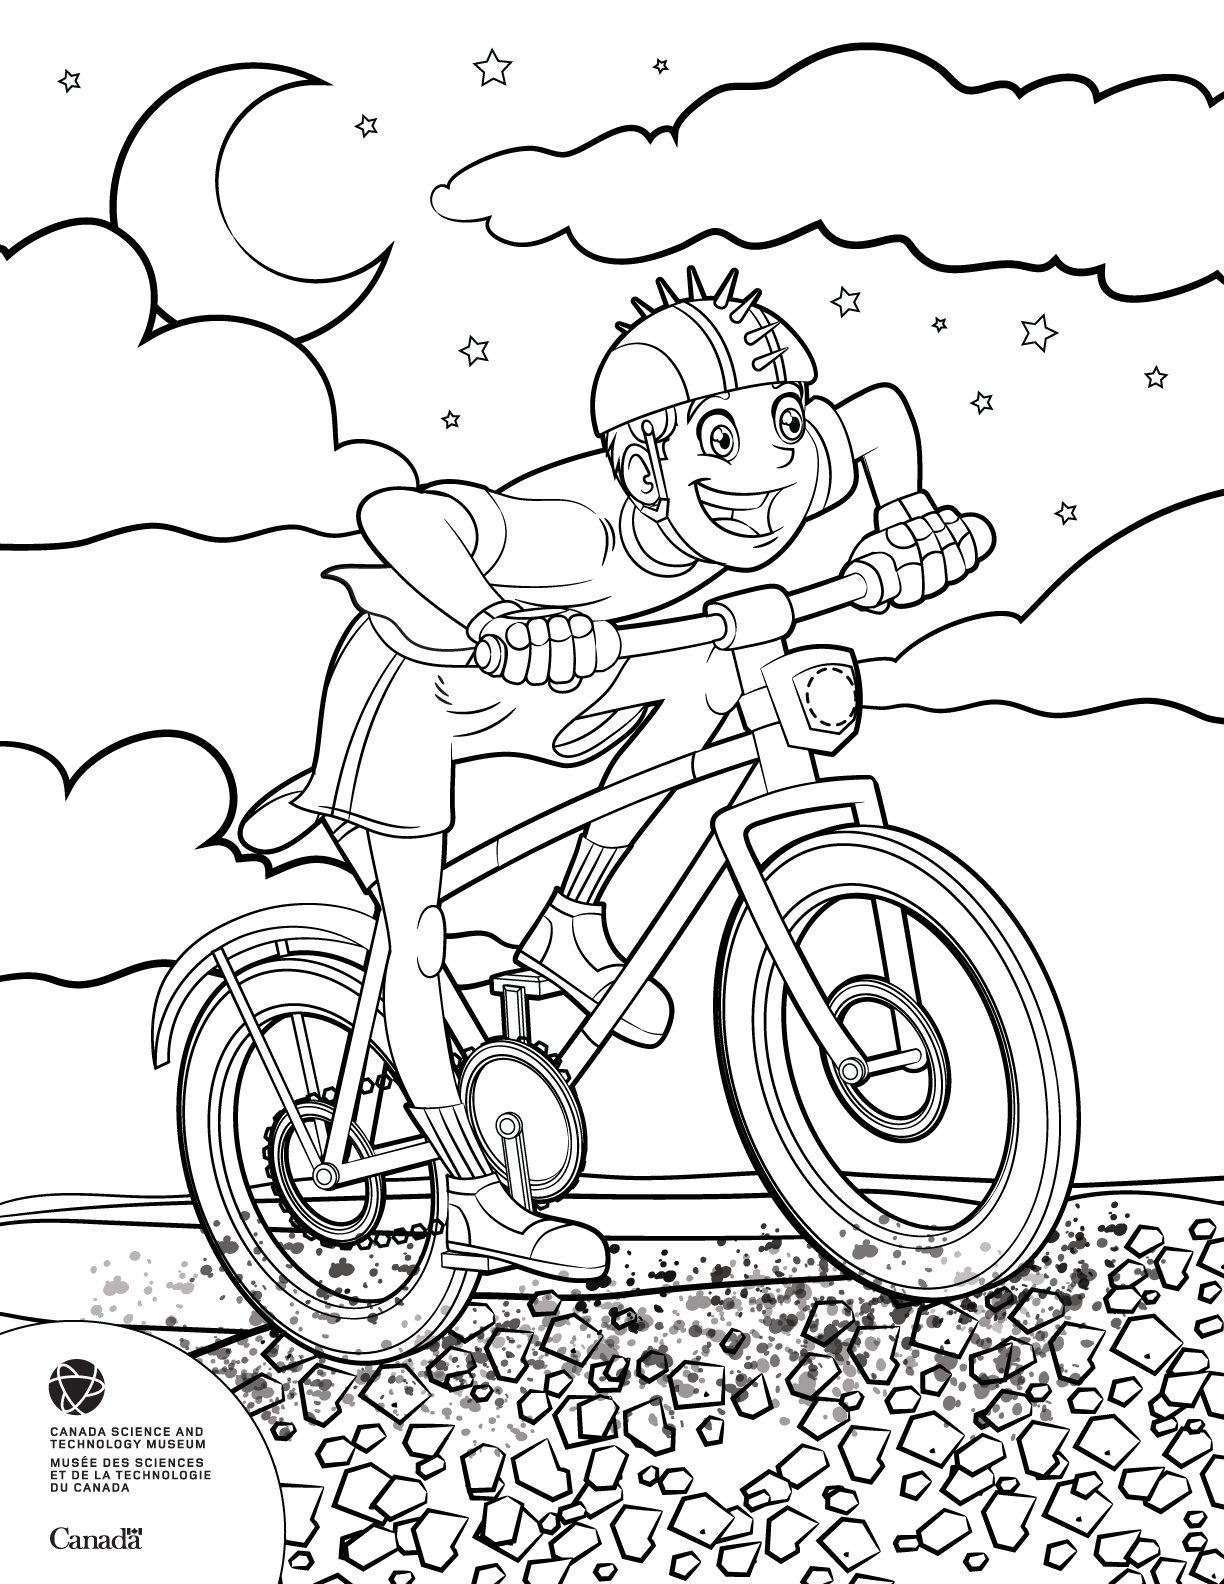 Kid on bike by GabrielChoquette